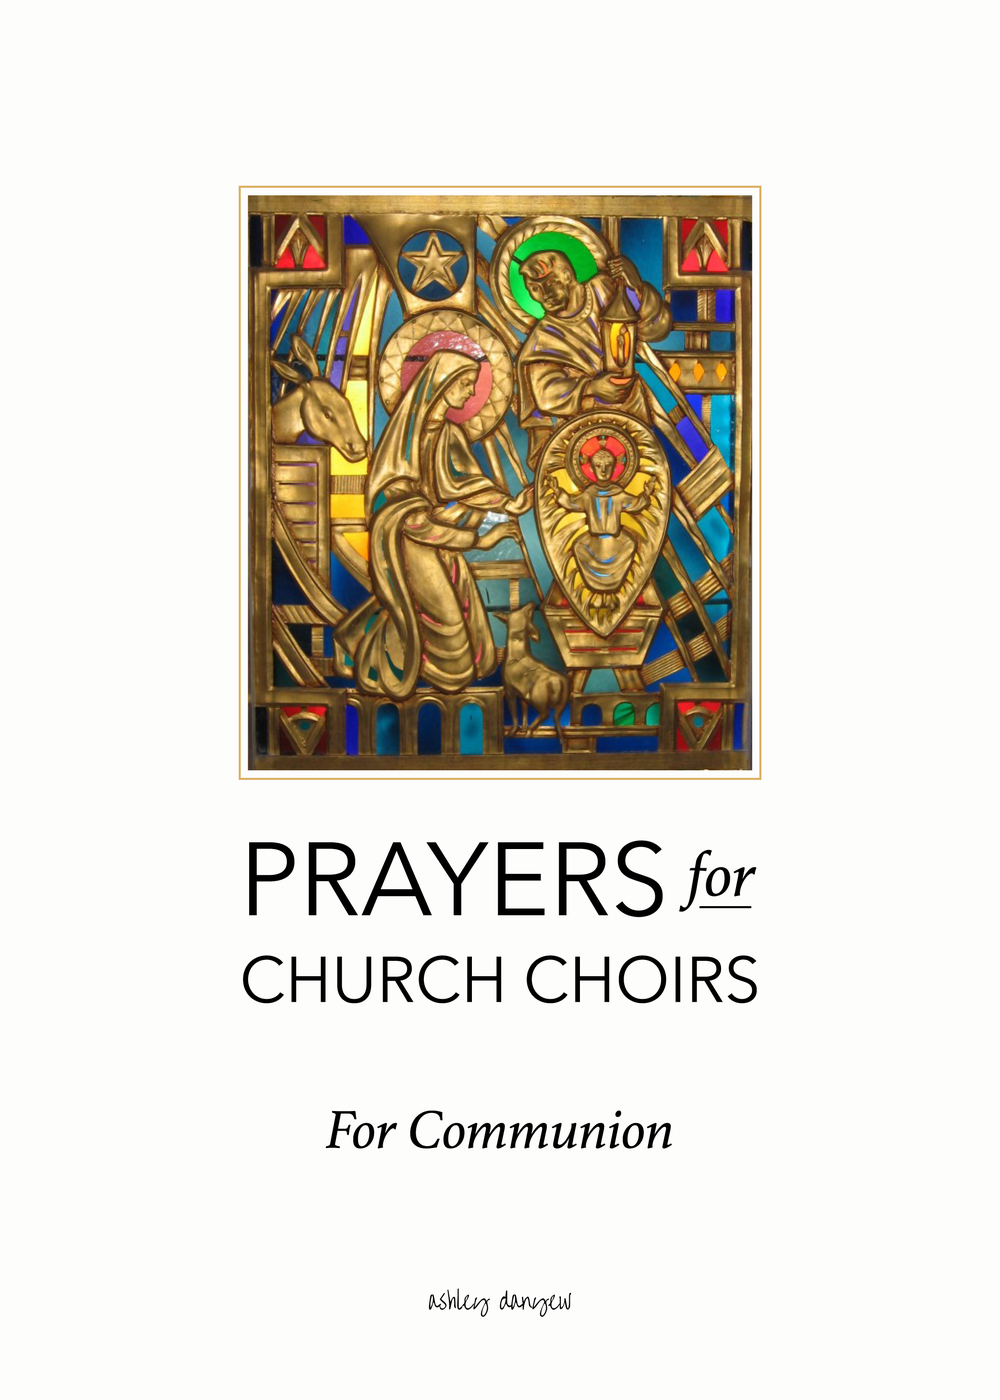 Copy of Prayers for Church Choirs: For Compassion